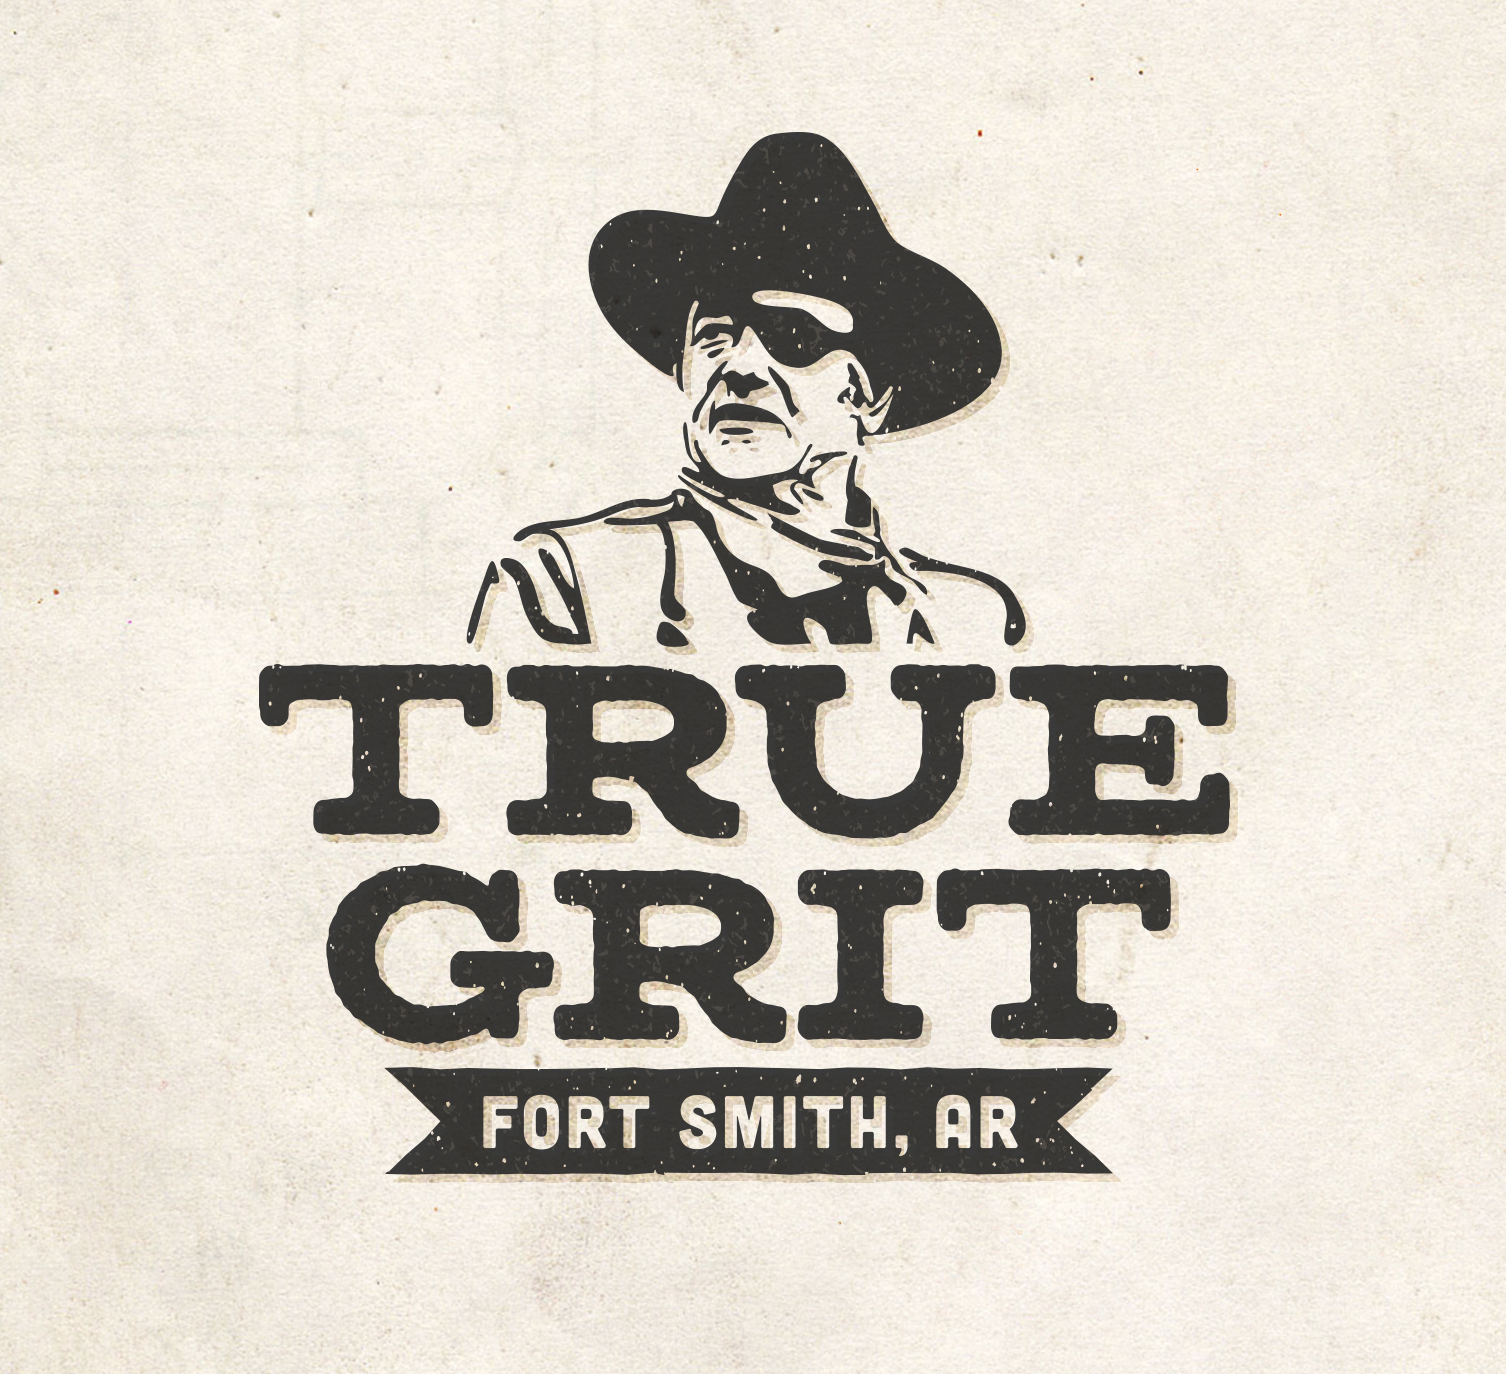 Sam Broom True Grit Fort Smith Arkansas Cintas logo logotype graphic design illustration